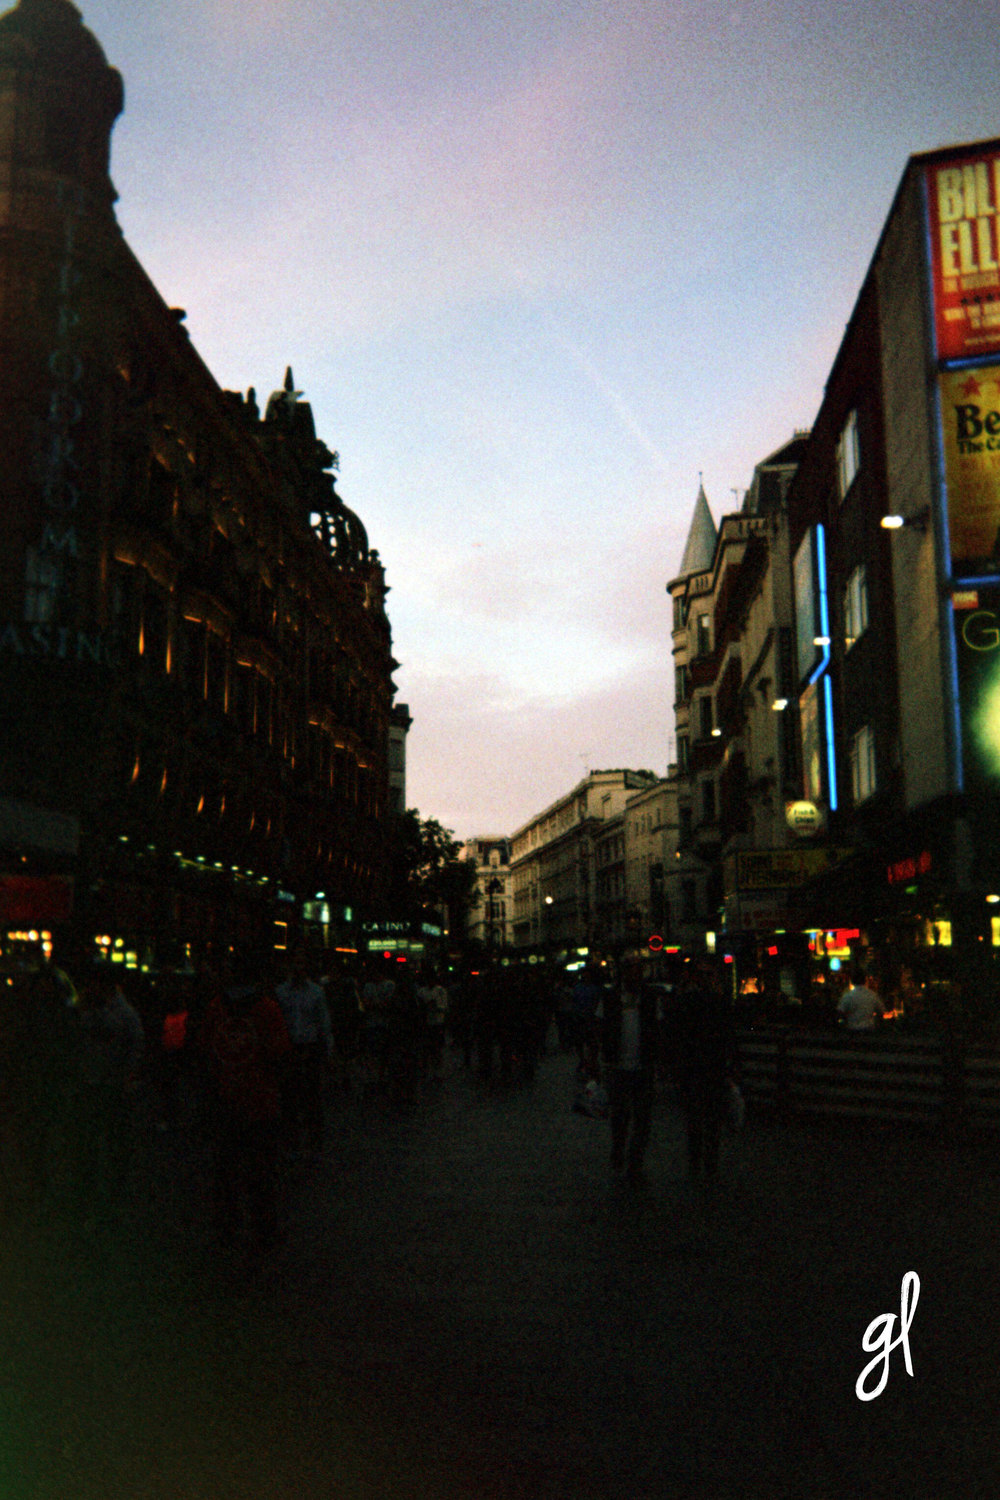 Leicester Square, Soho, London